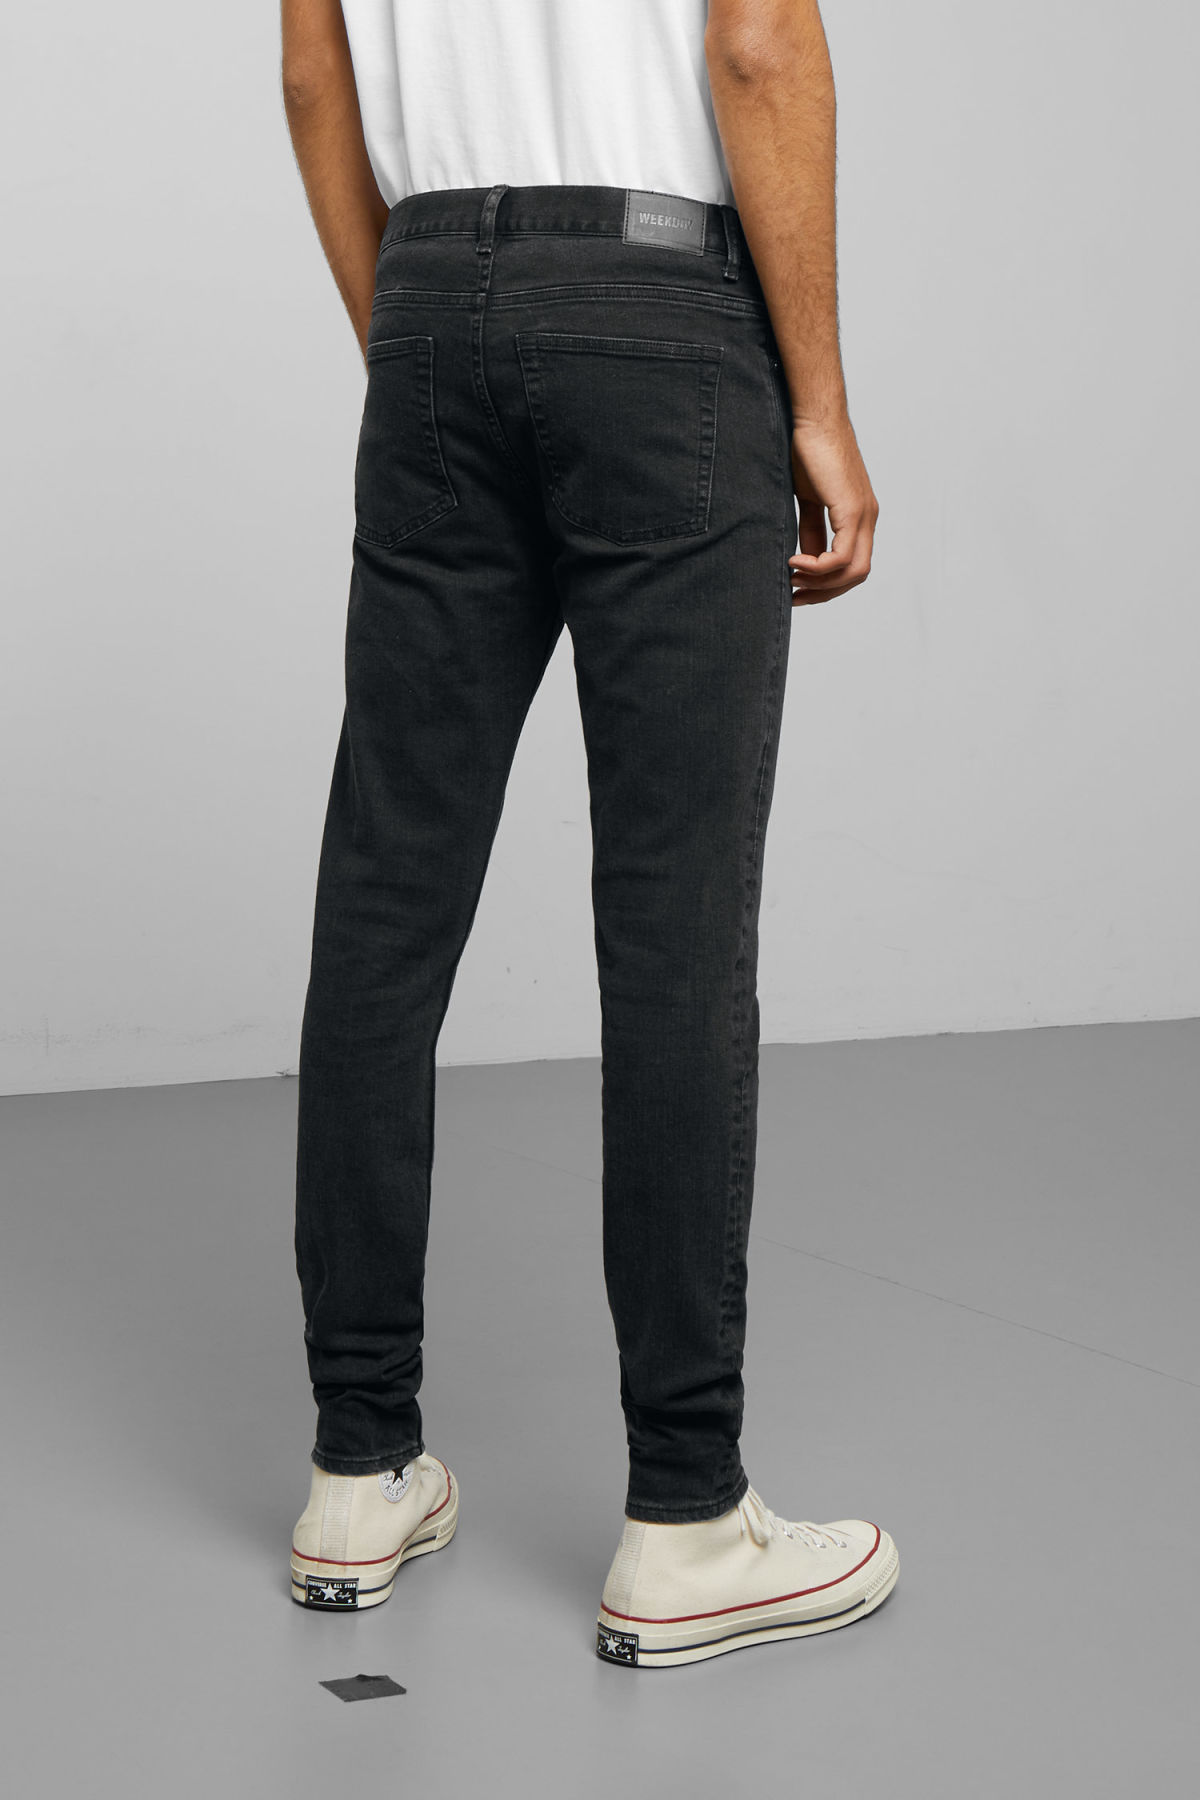 Model side image of Weekday form tuned black jeans in black